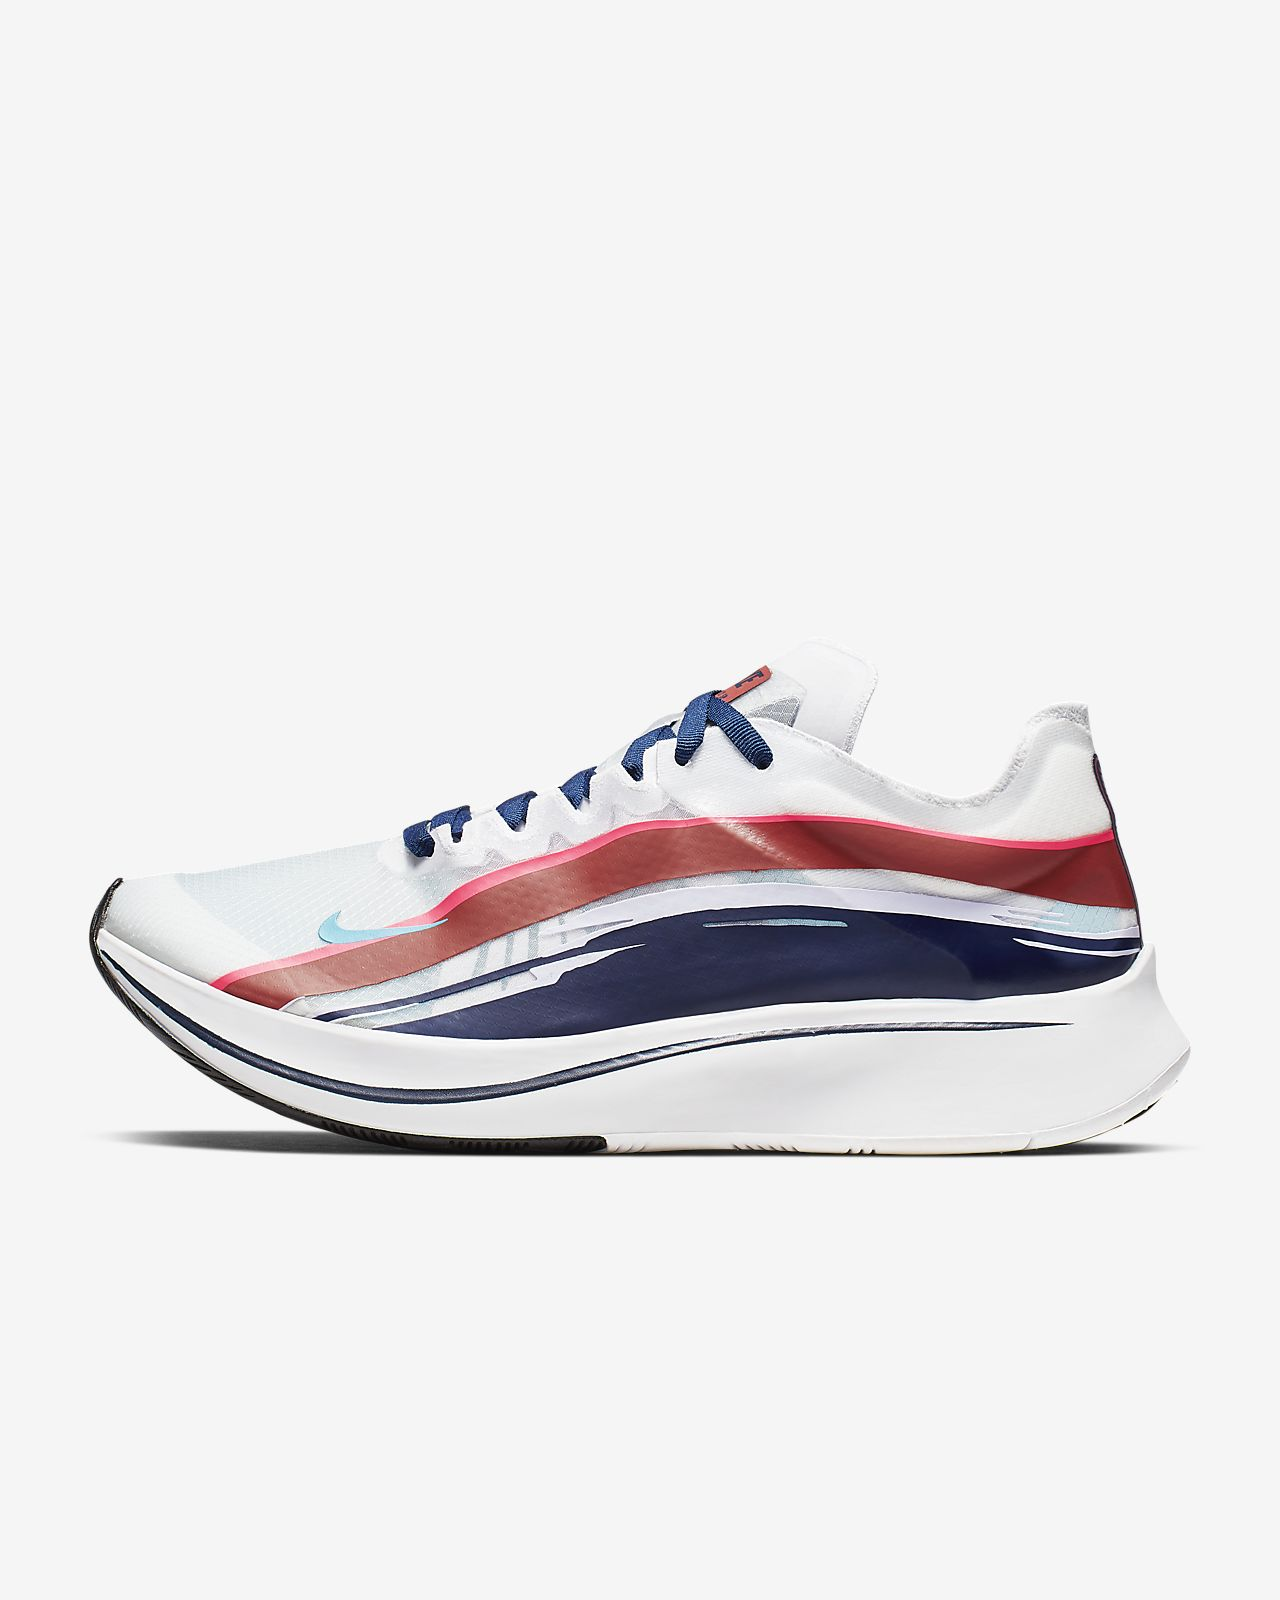 pretty nice 6b6f3 4352b ... Chaussure de running Nike Zoom Fly SP pour Femme